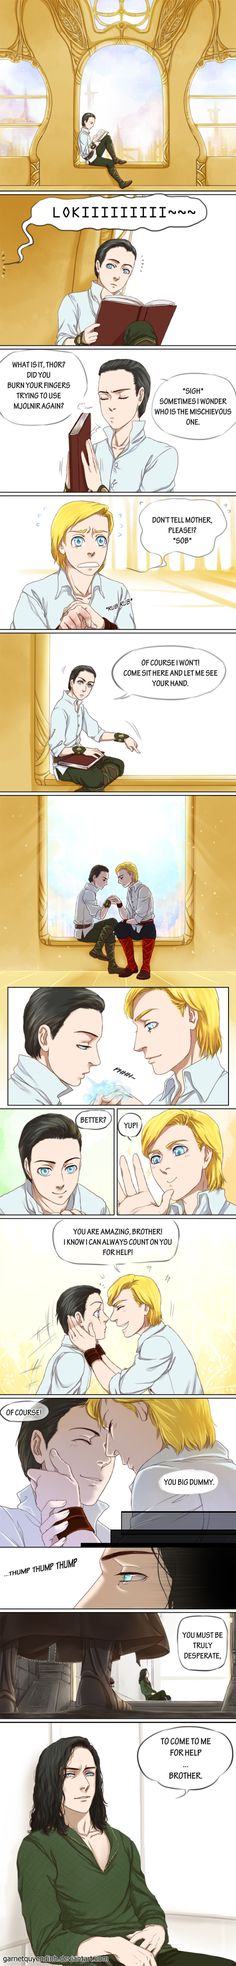 Thorki-The things I remember by GarnetQuyenDinh on DeviantArt